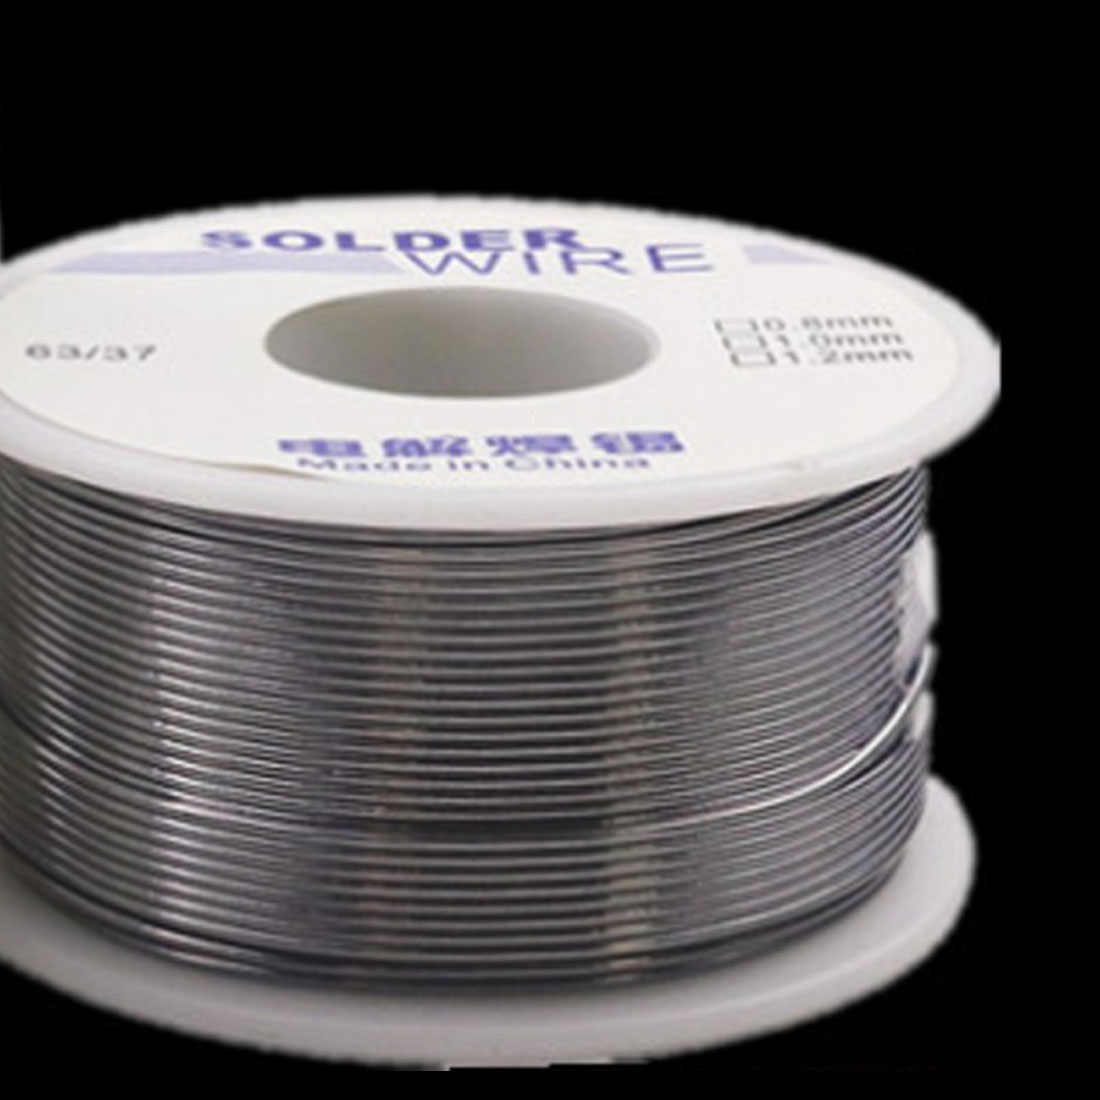 Fio De Solda 63/37 50 Industrial g 1.0mm/0.8mm 2.0-2.3% Estanho Chumbo Rosin Flux Core Weldring